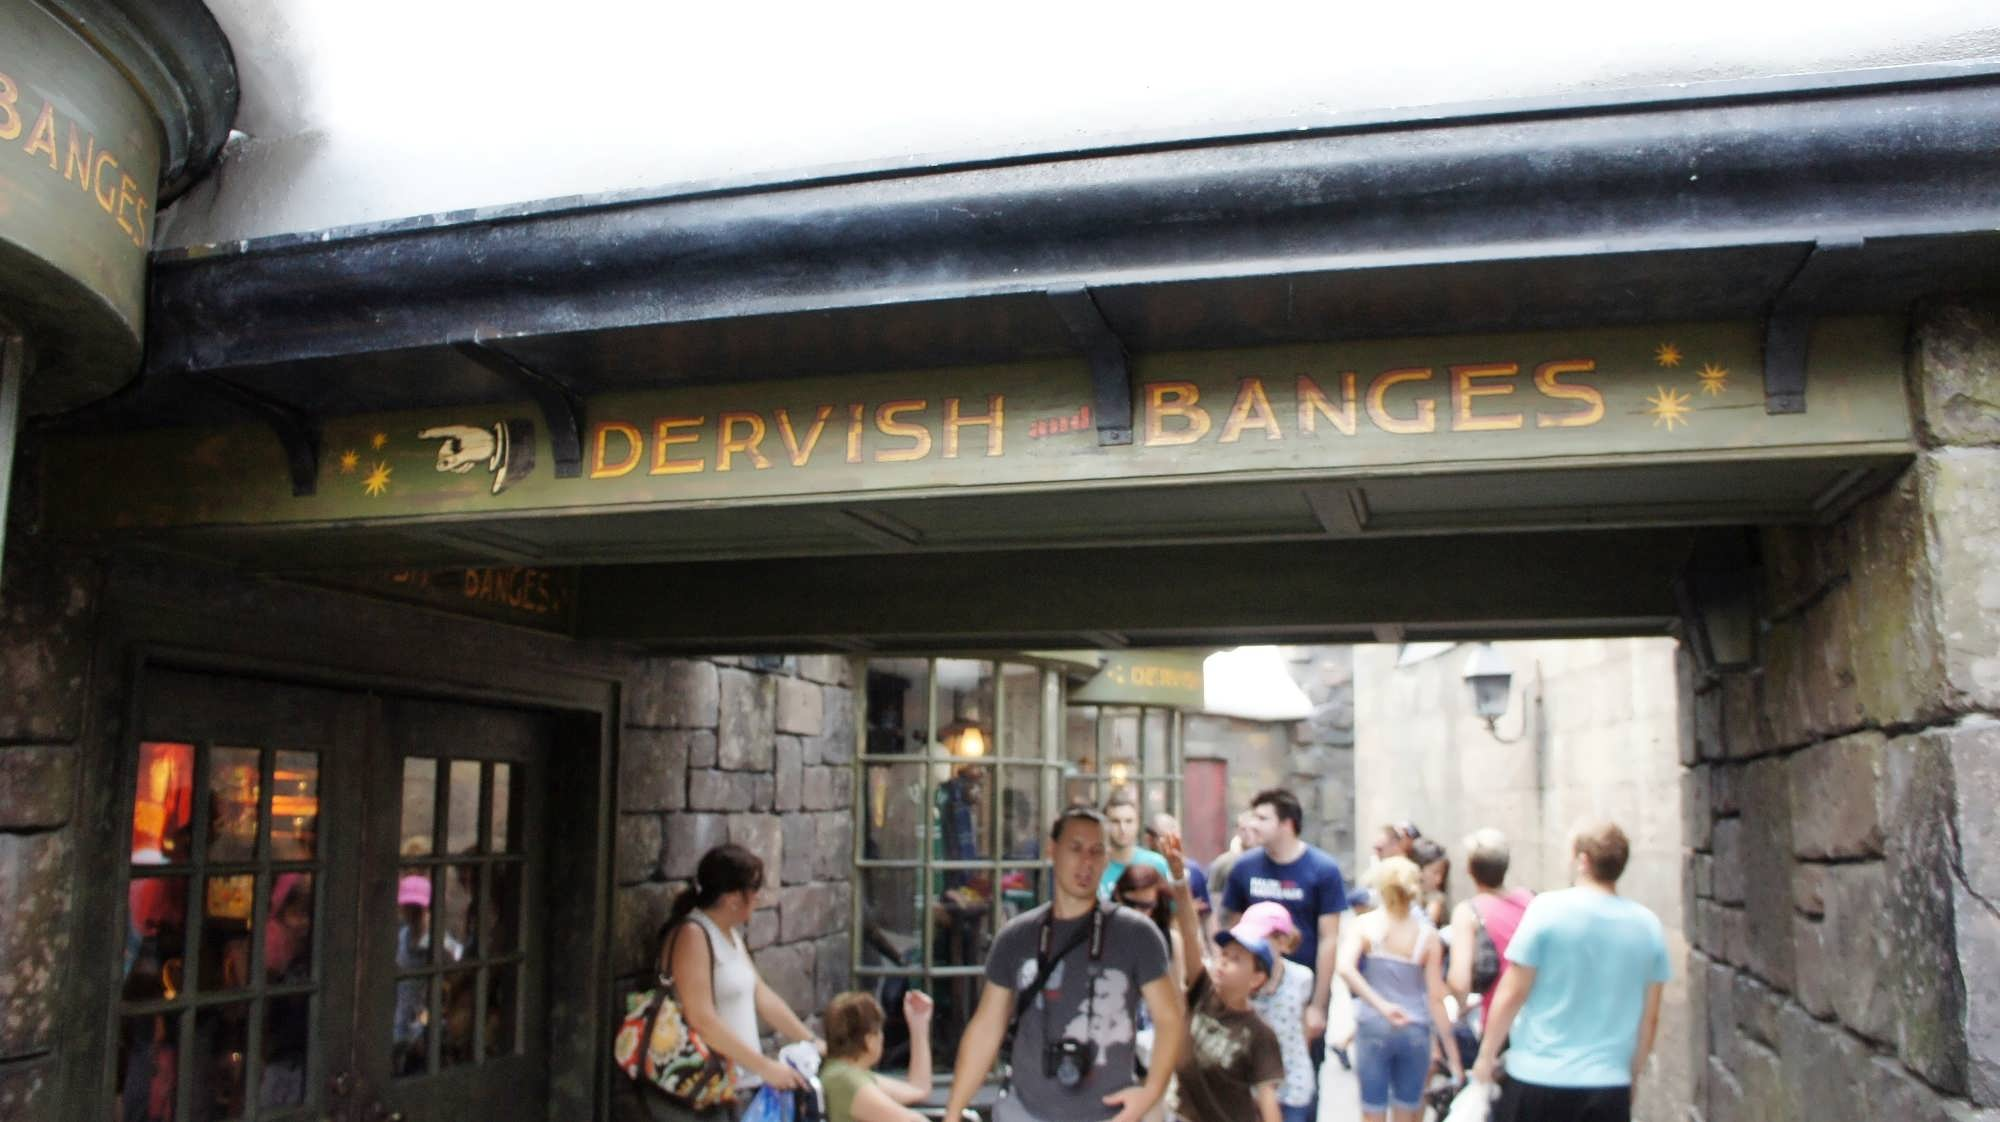 Dervish and Banges inside The Wizarding World of Harry Potter - Hogsmeade